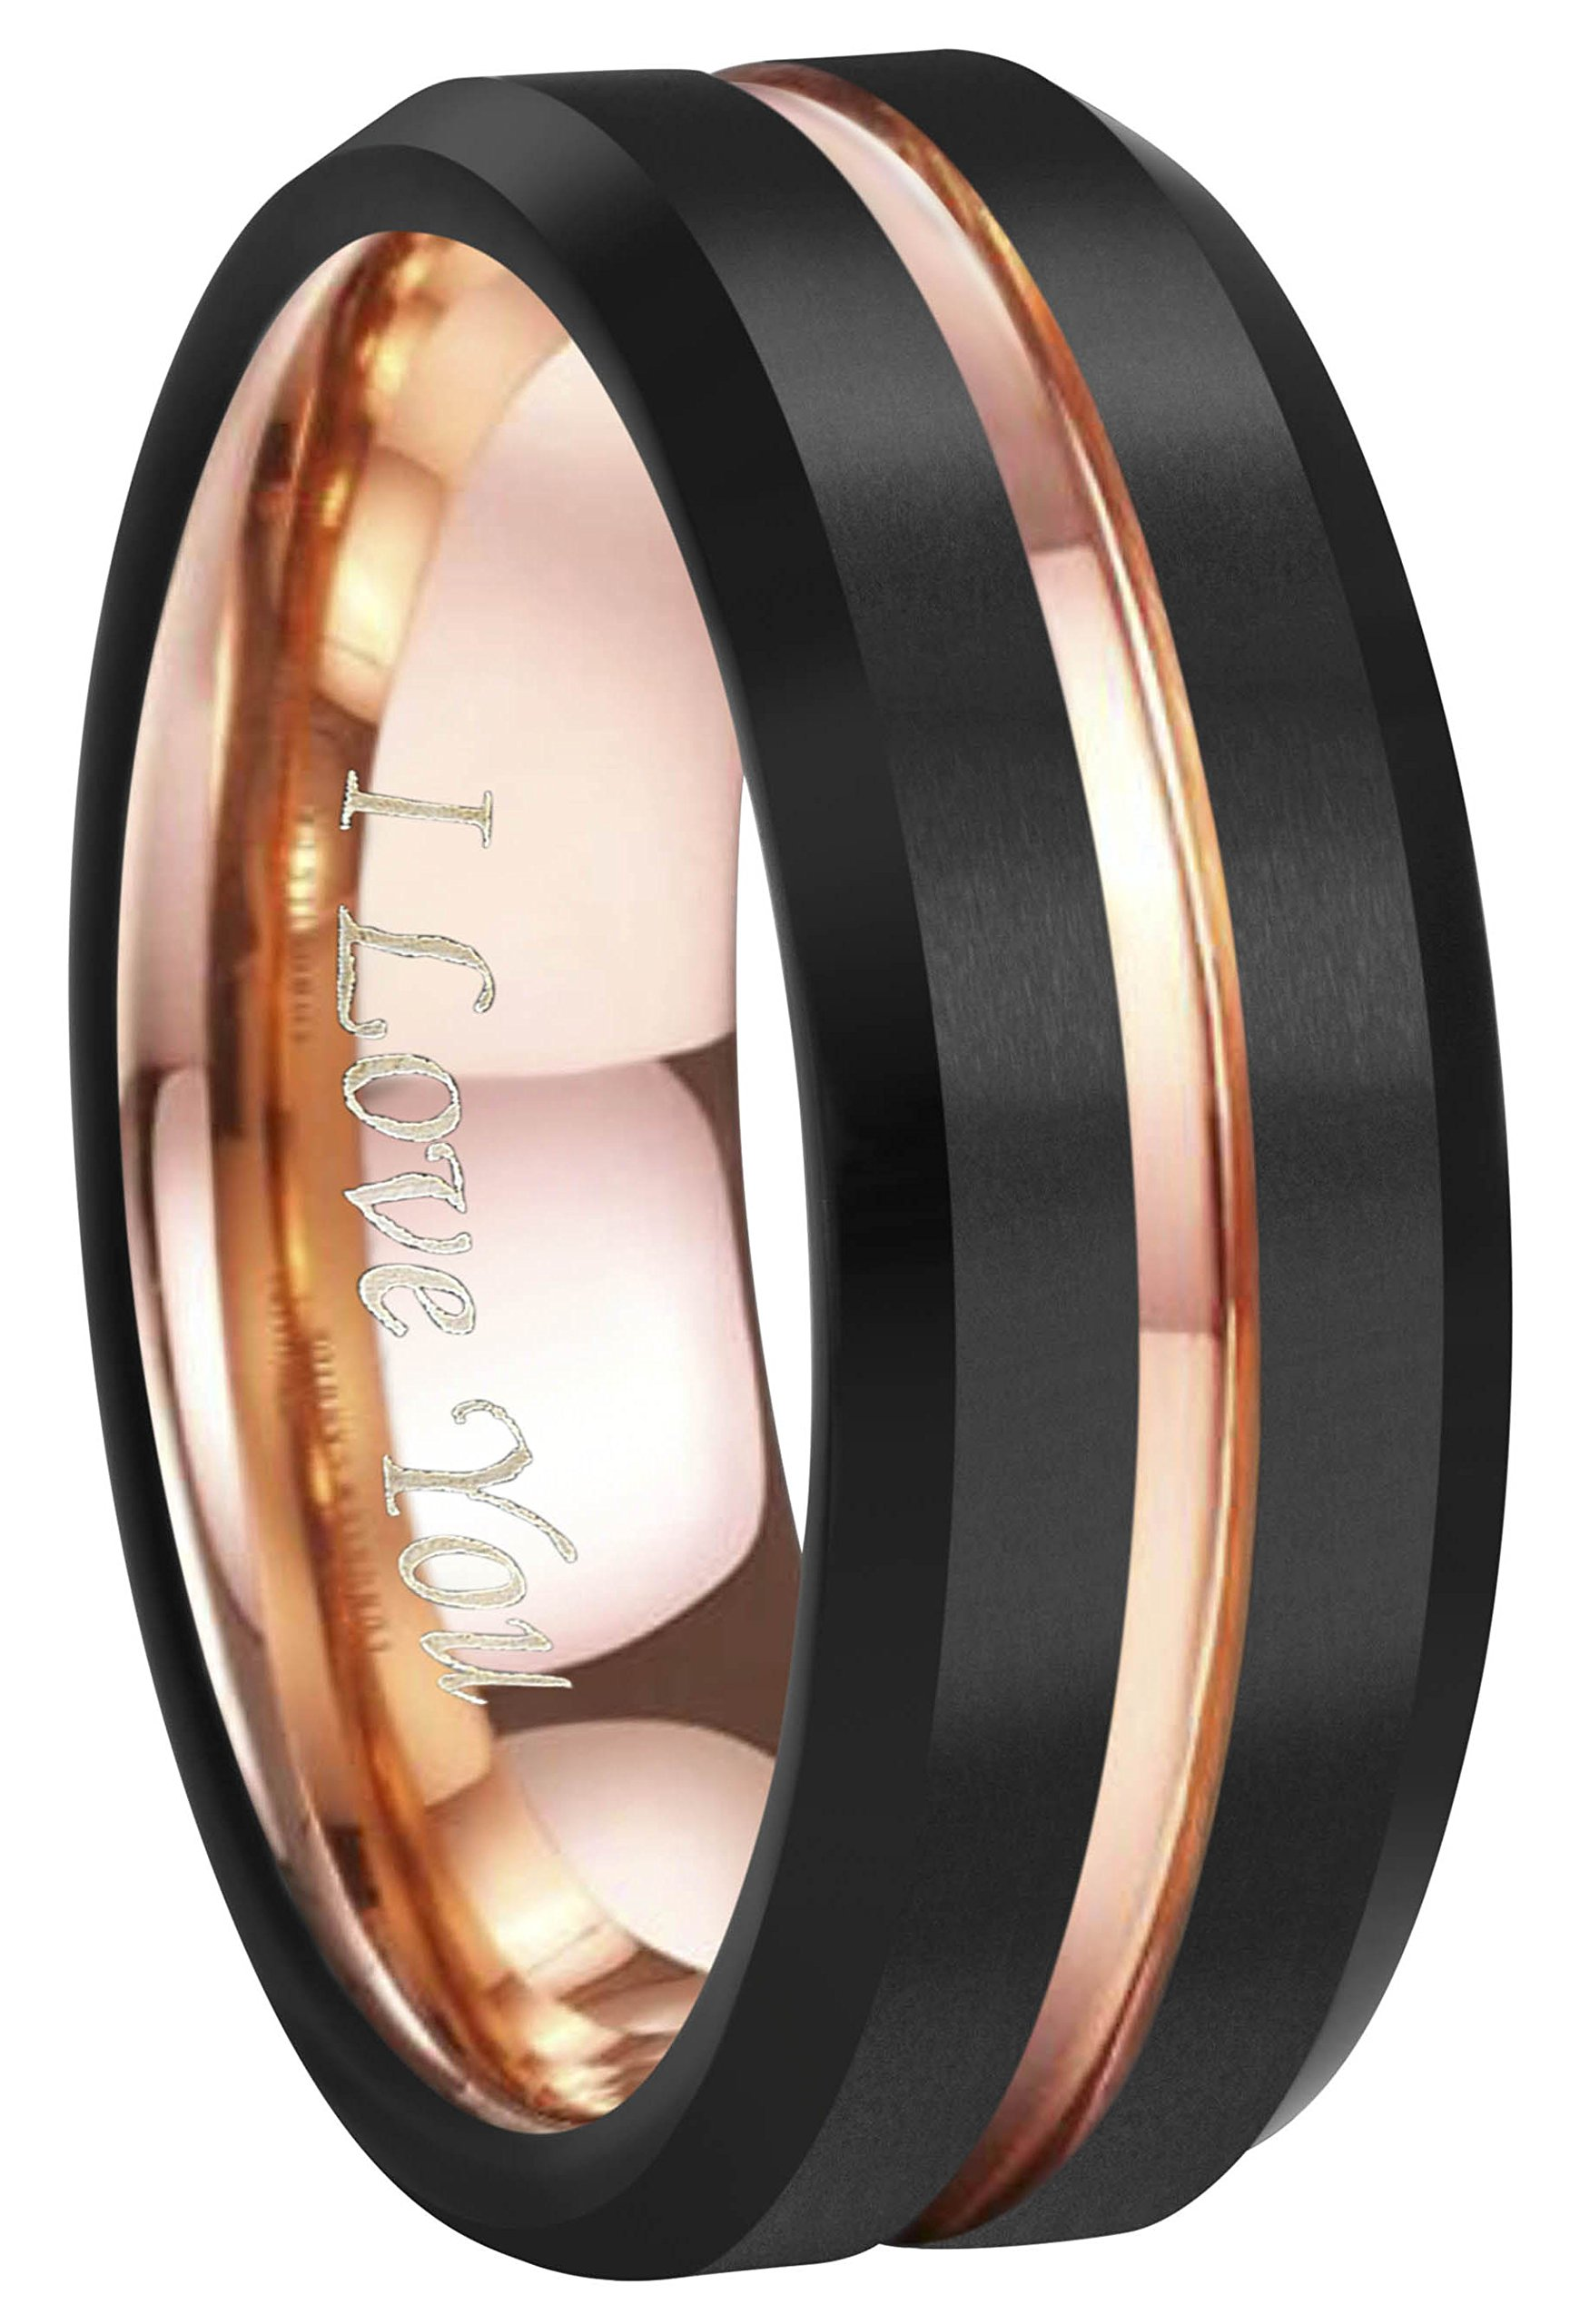 4mm 6mm 8mm 10mm Rose Gold Groove Black Matte Finish Tungsten Carbide Wedding Band Ring Engraved ''I Love You'' (8mm,10.5)